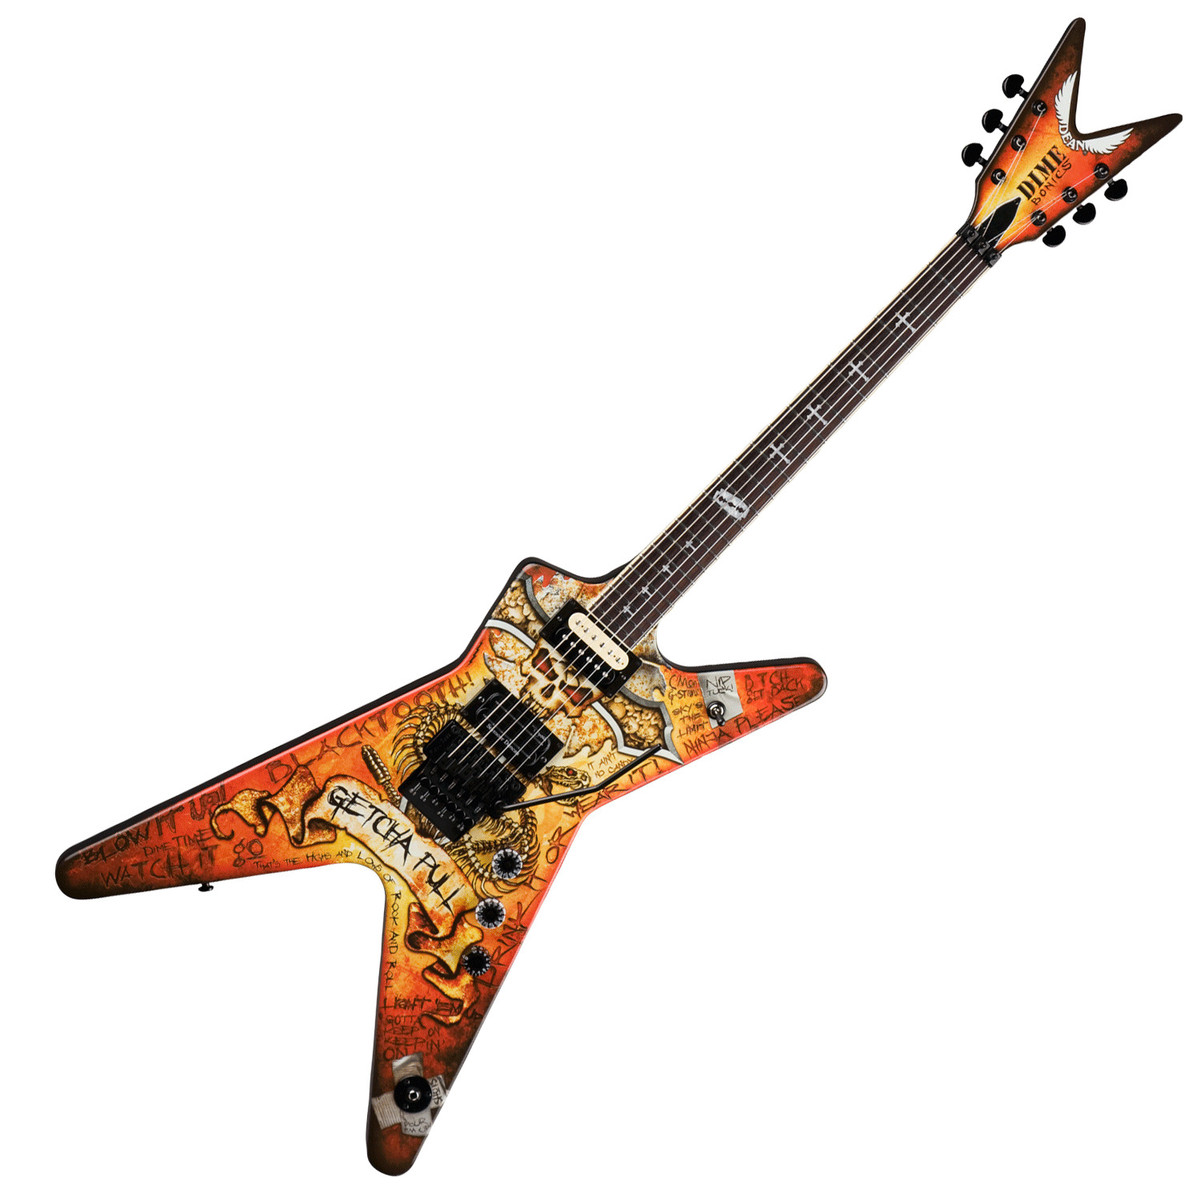 dean dimebag dimebonics ml electric guitar with case at. Black Bedroom Furniture Sets. Home Design Ideas